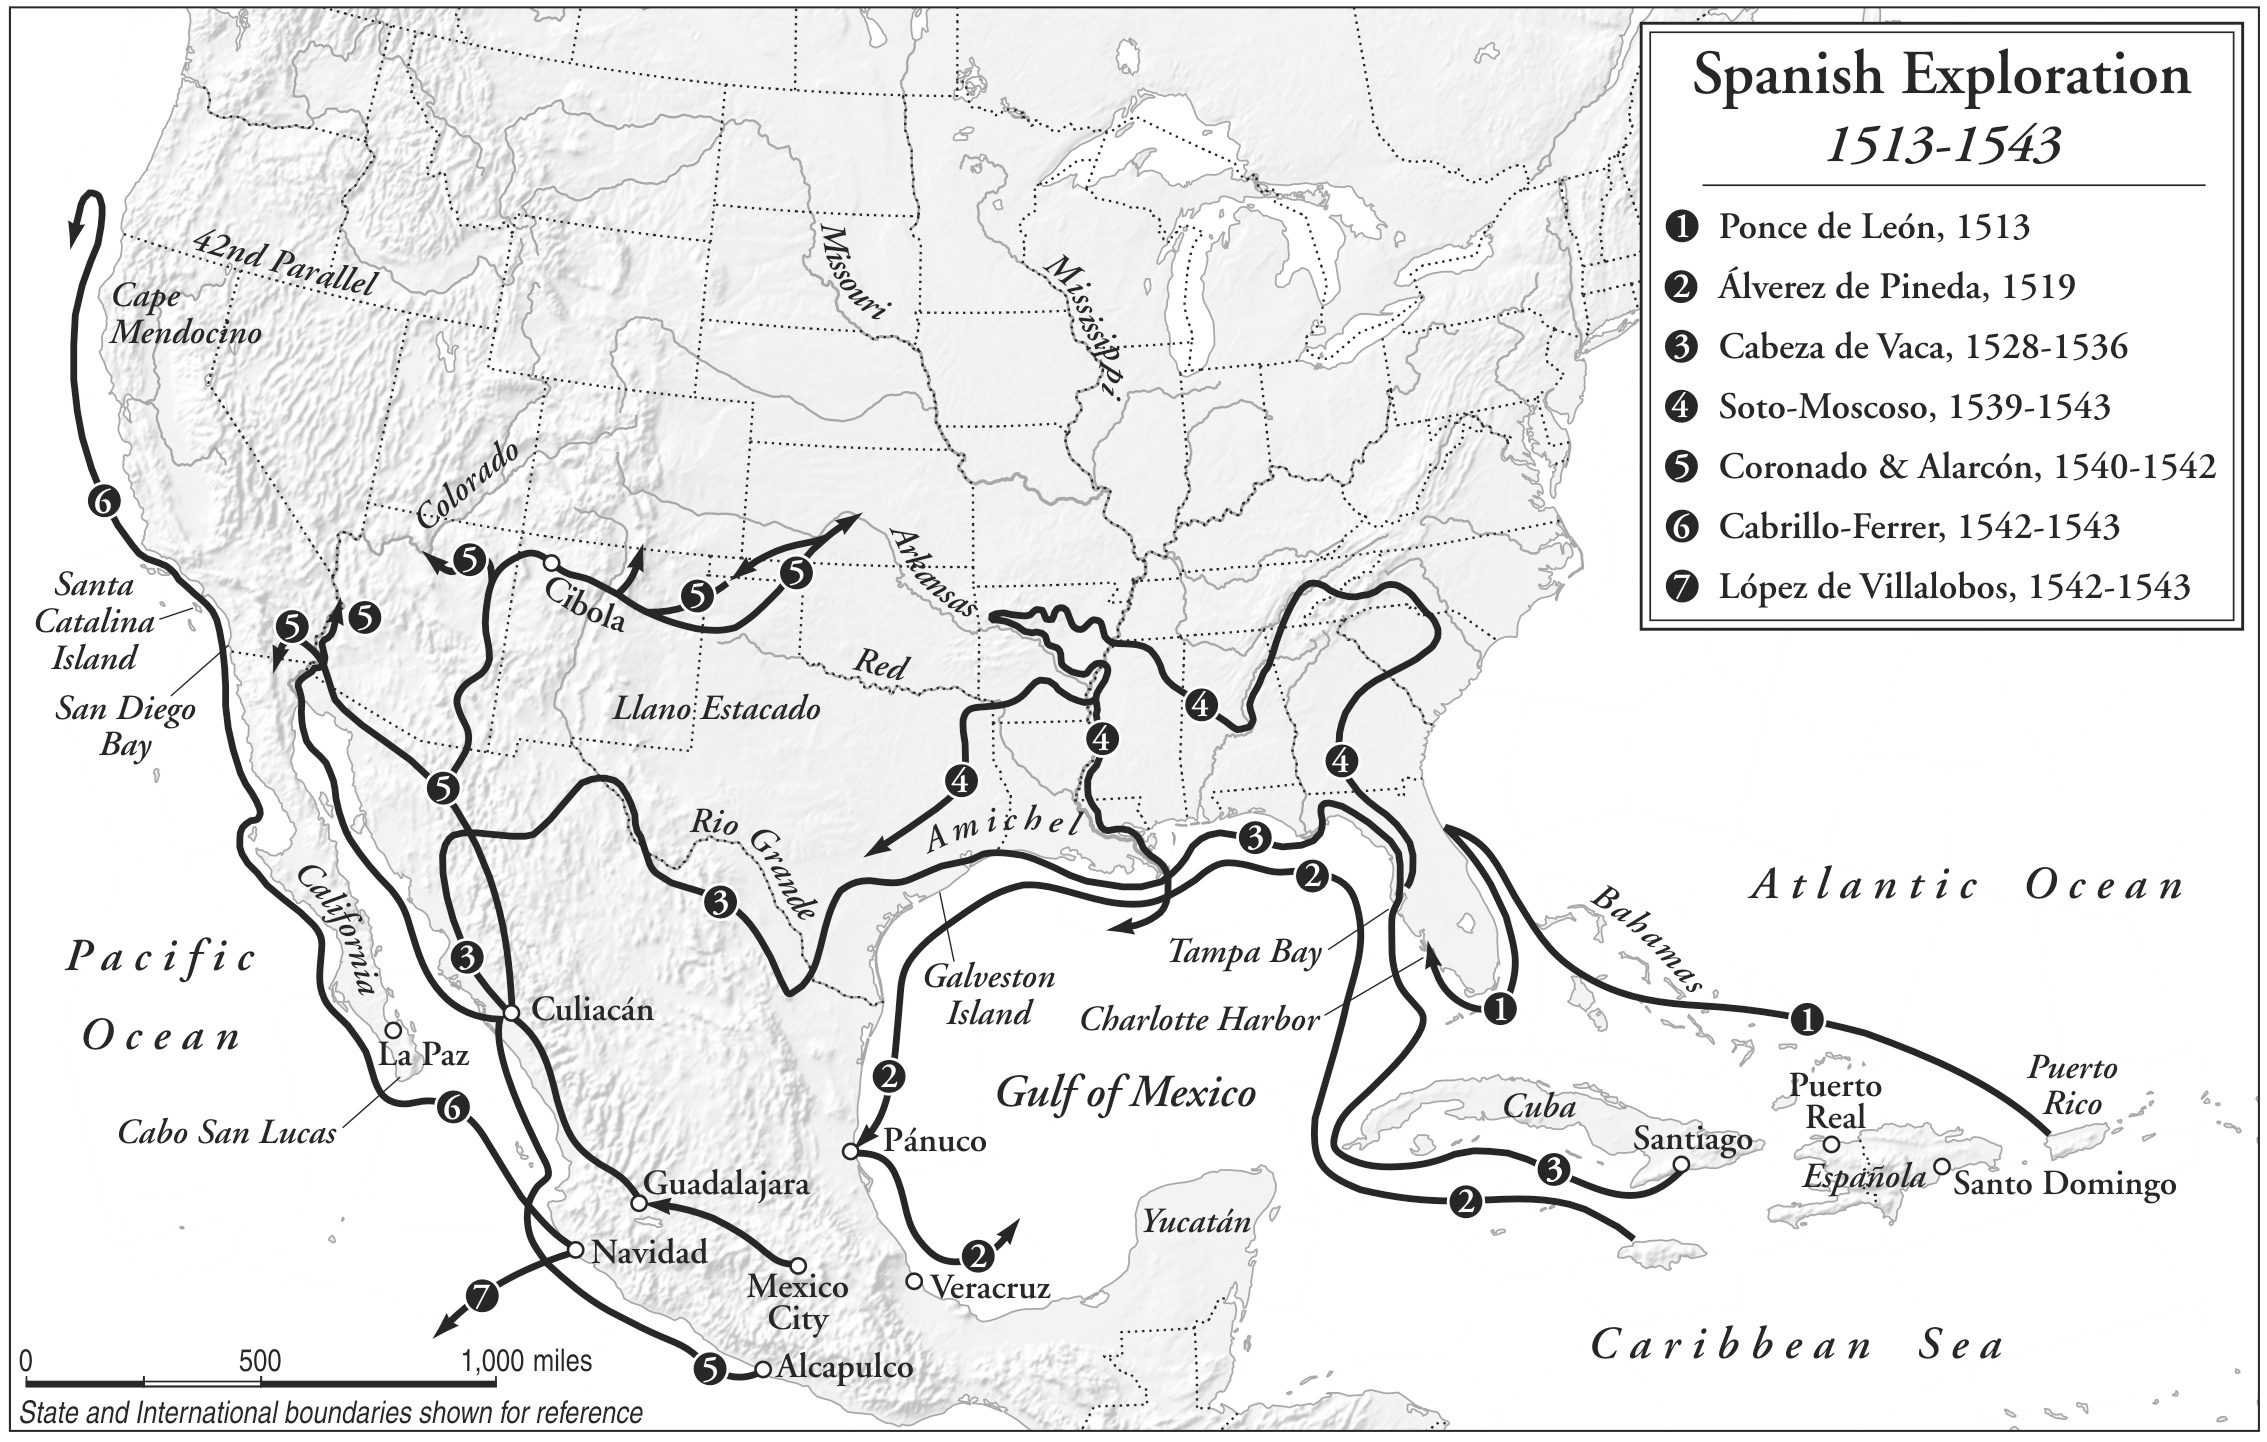 """Spanish Exploration, 1513–1543,"" printed in Neil Foley, Mexicans in the Making of America (Harvard University Press, 2014), p. 14. Courtesy of Neil Foley."